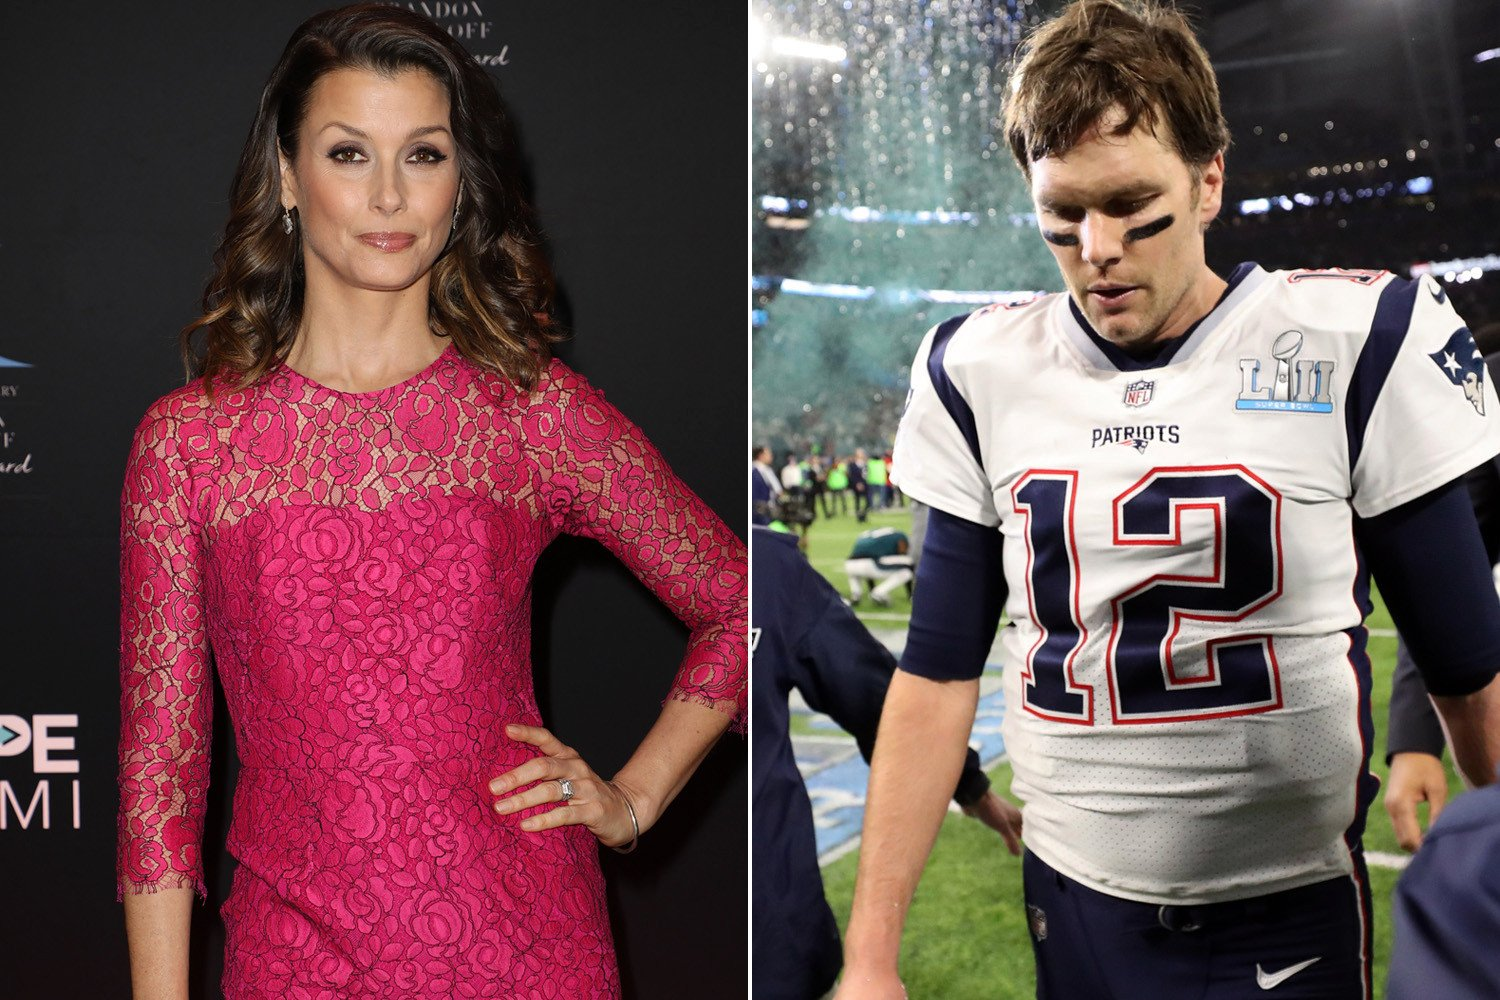 Tom Brady's ex was impressed with the other Super Bowl QB